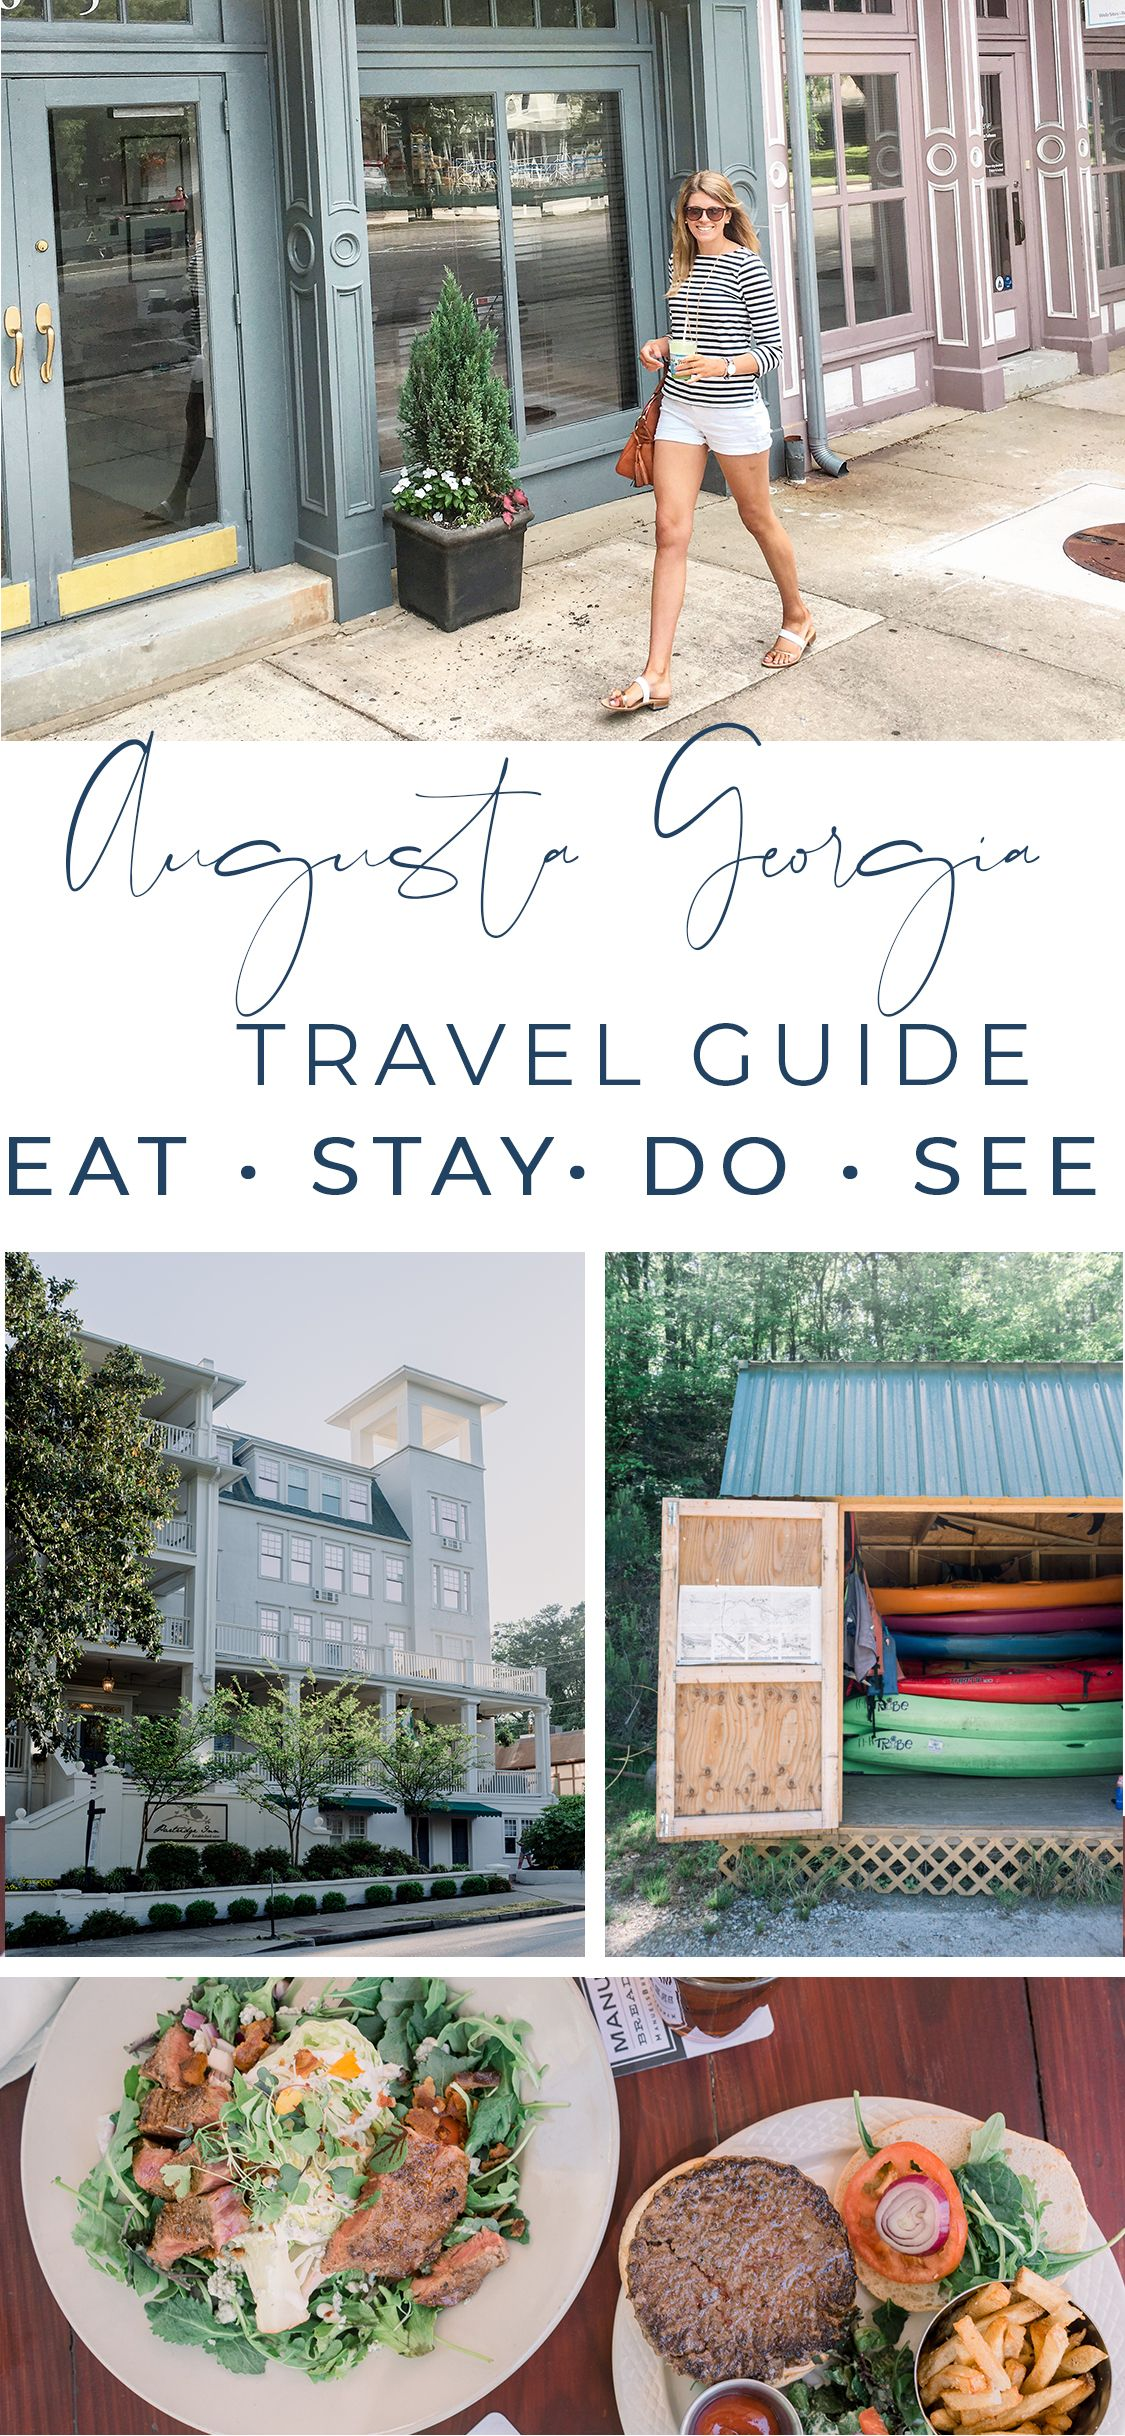 Augusta Georgia Travel Guide #travelbugs